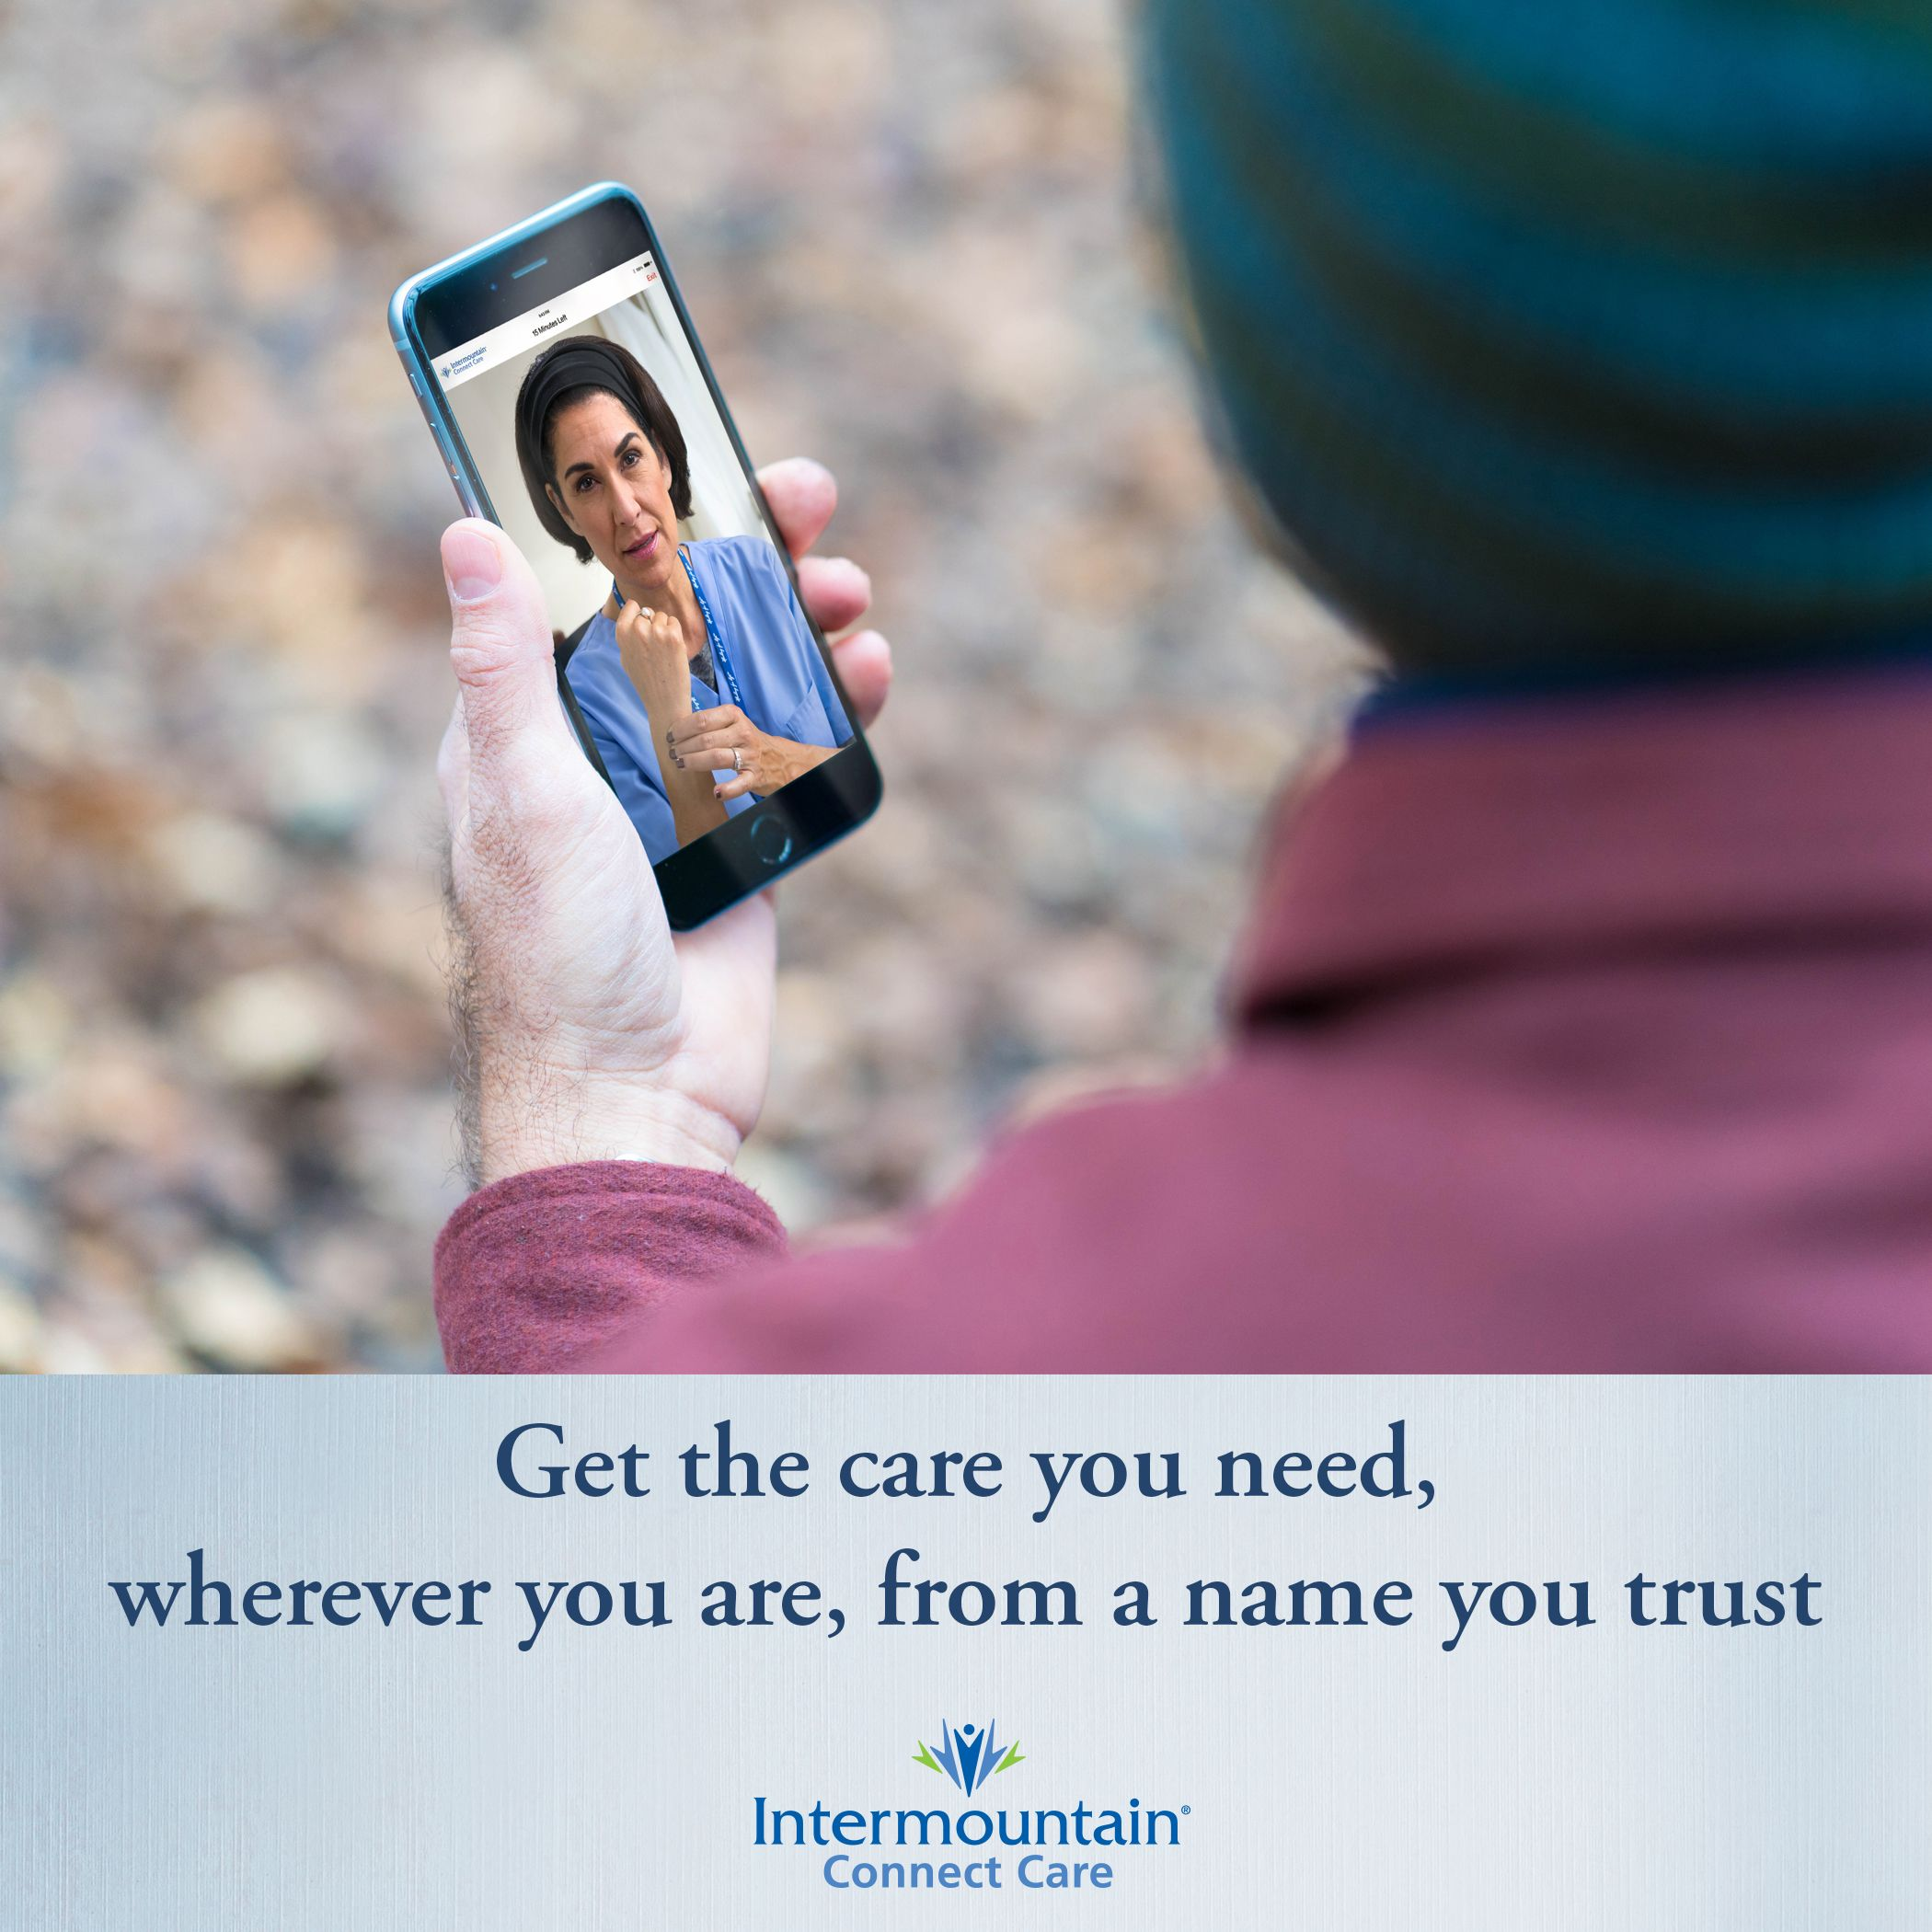 Connect care makes it easy to talk to an intermountain